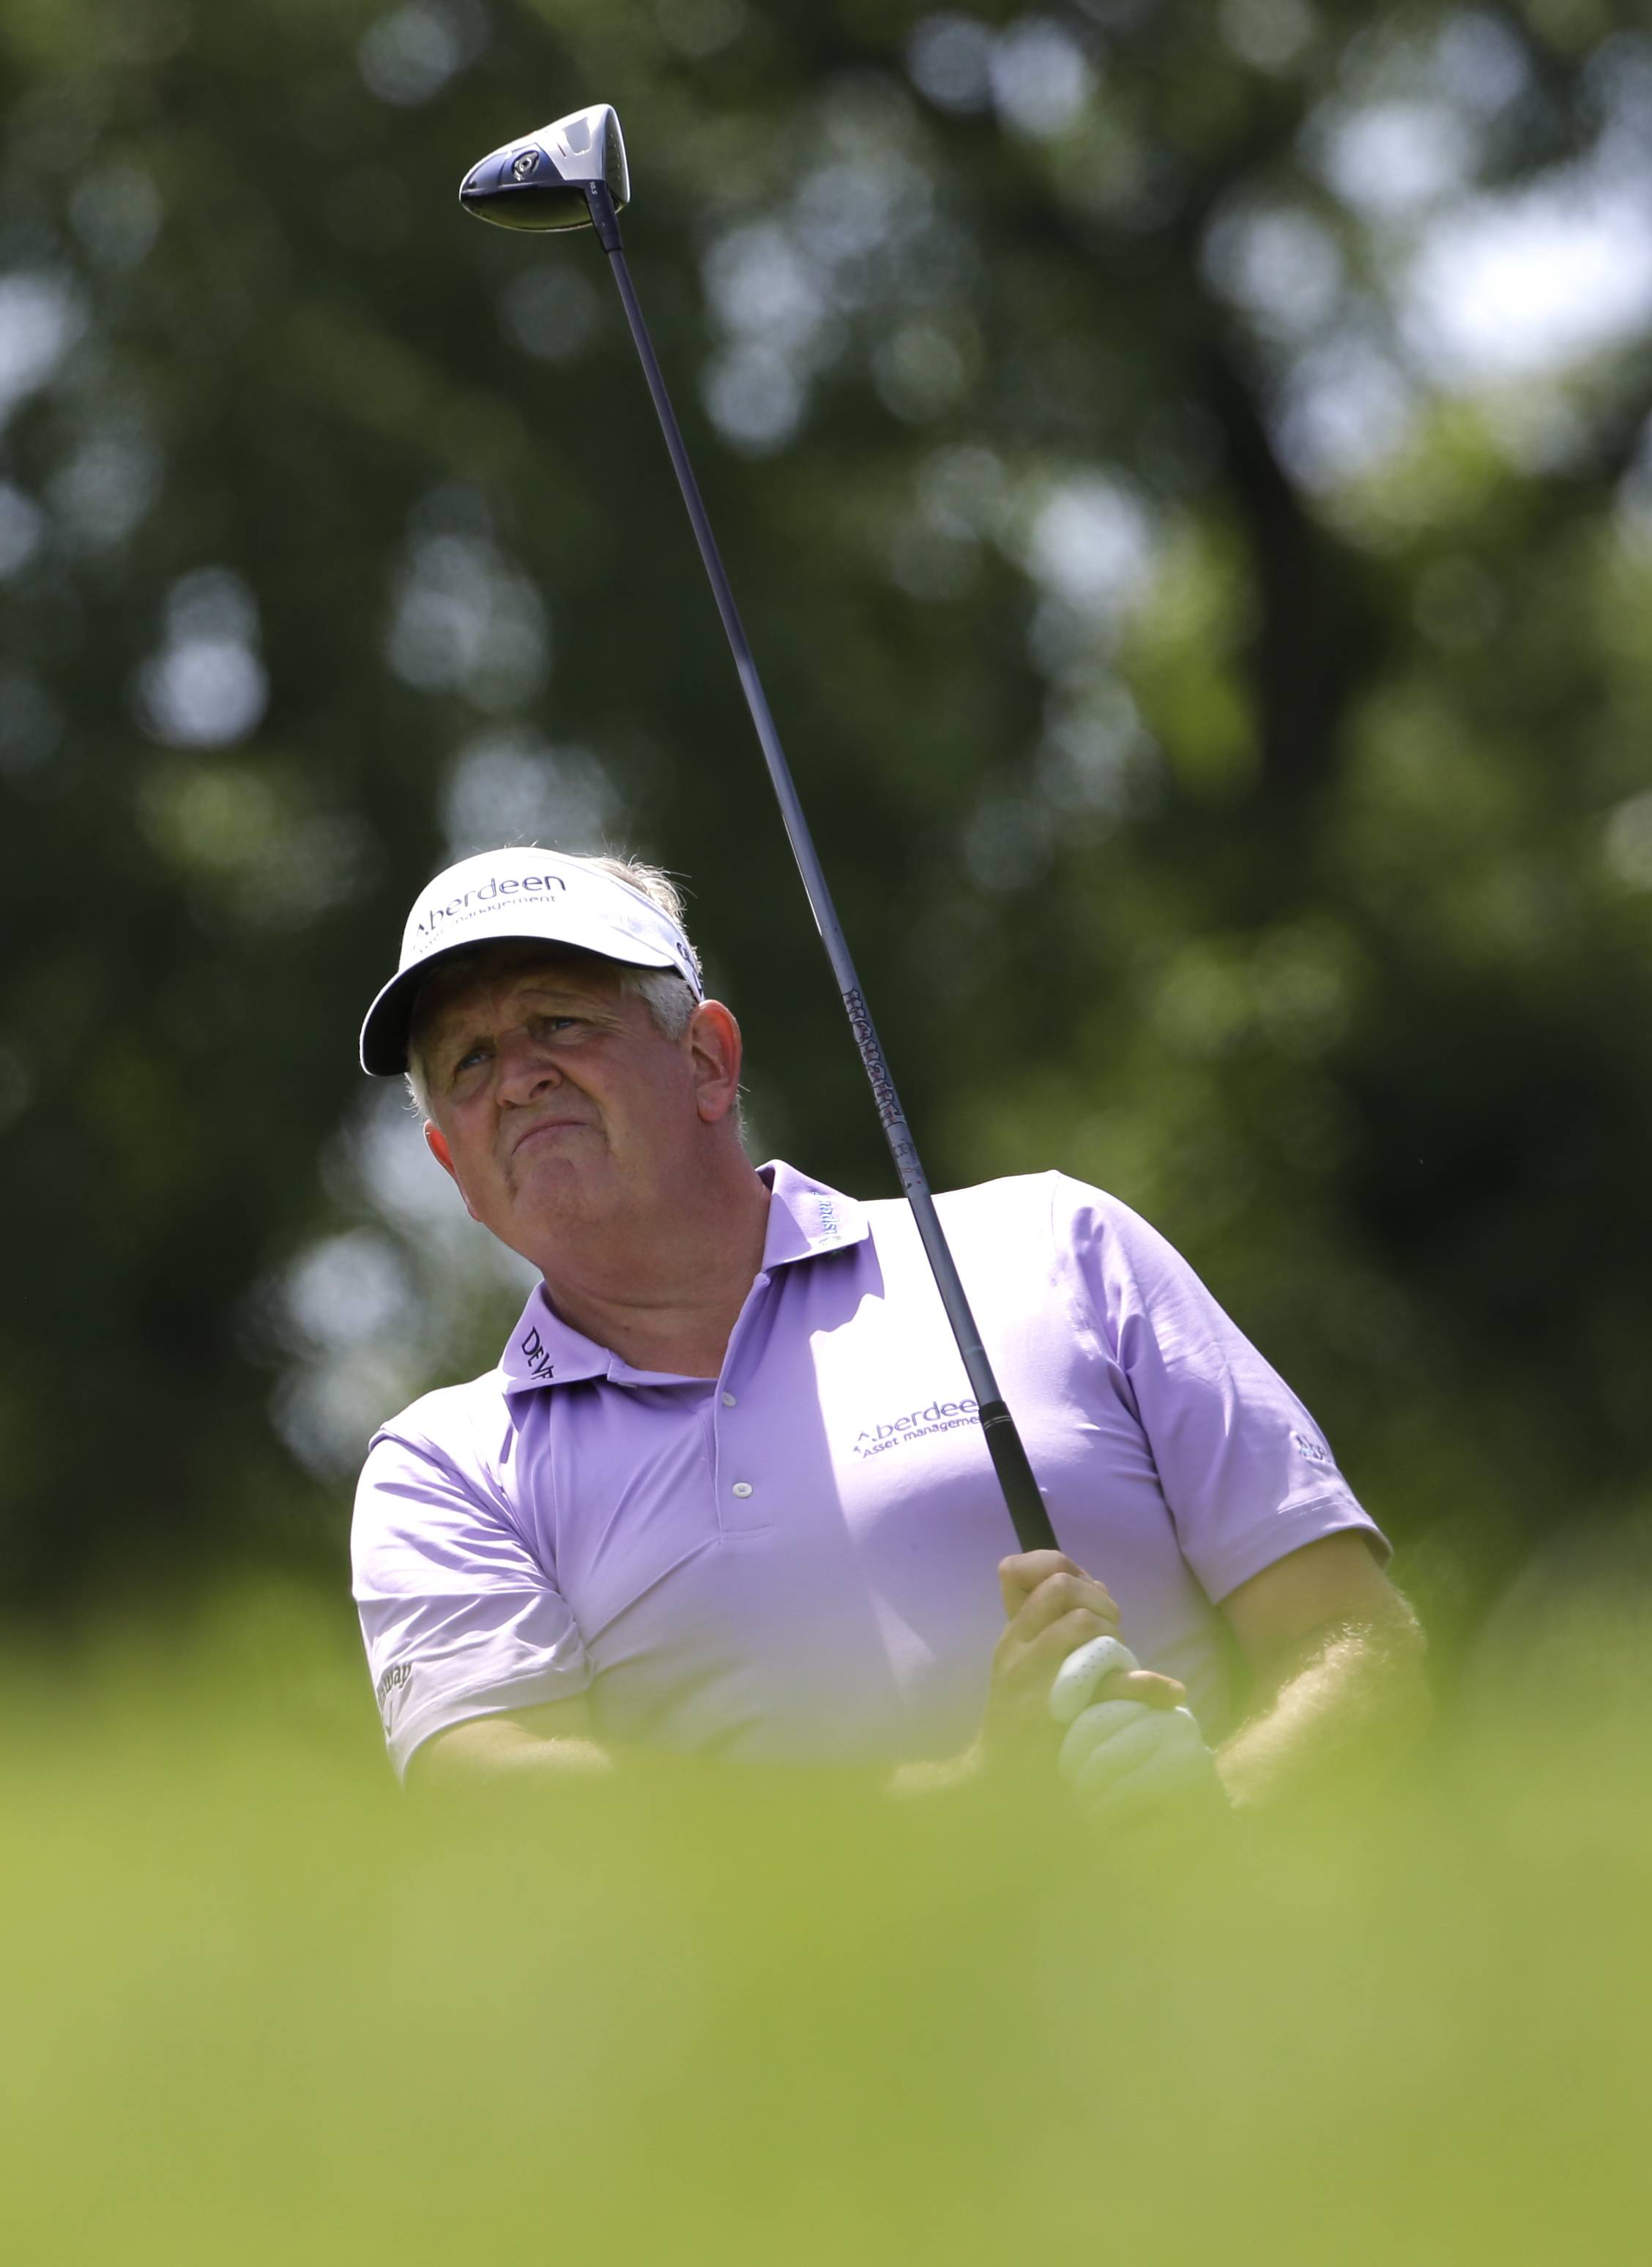 Colin Montgomerie watches his tee shot on the third hole during the final round of the Encompass Championship golf tournament in Glenview, Ill., Sunday, June 22, 2014.